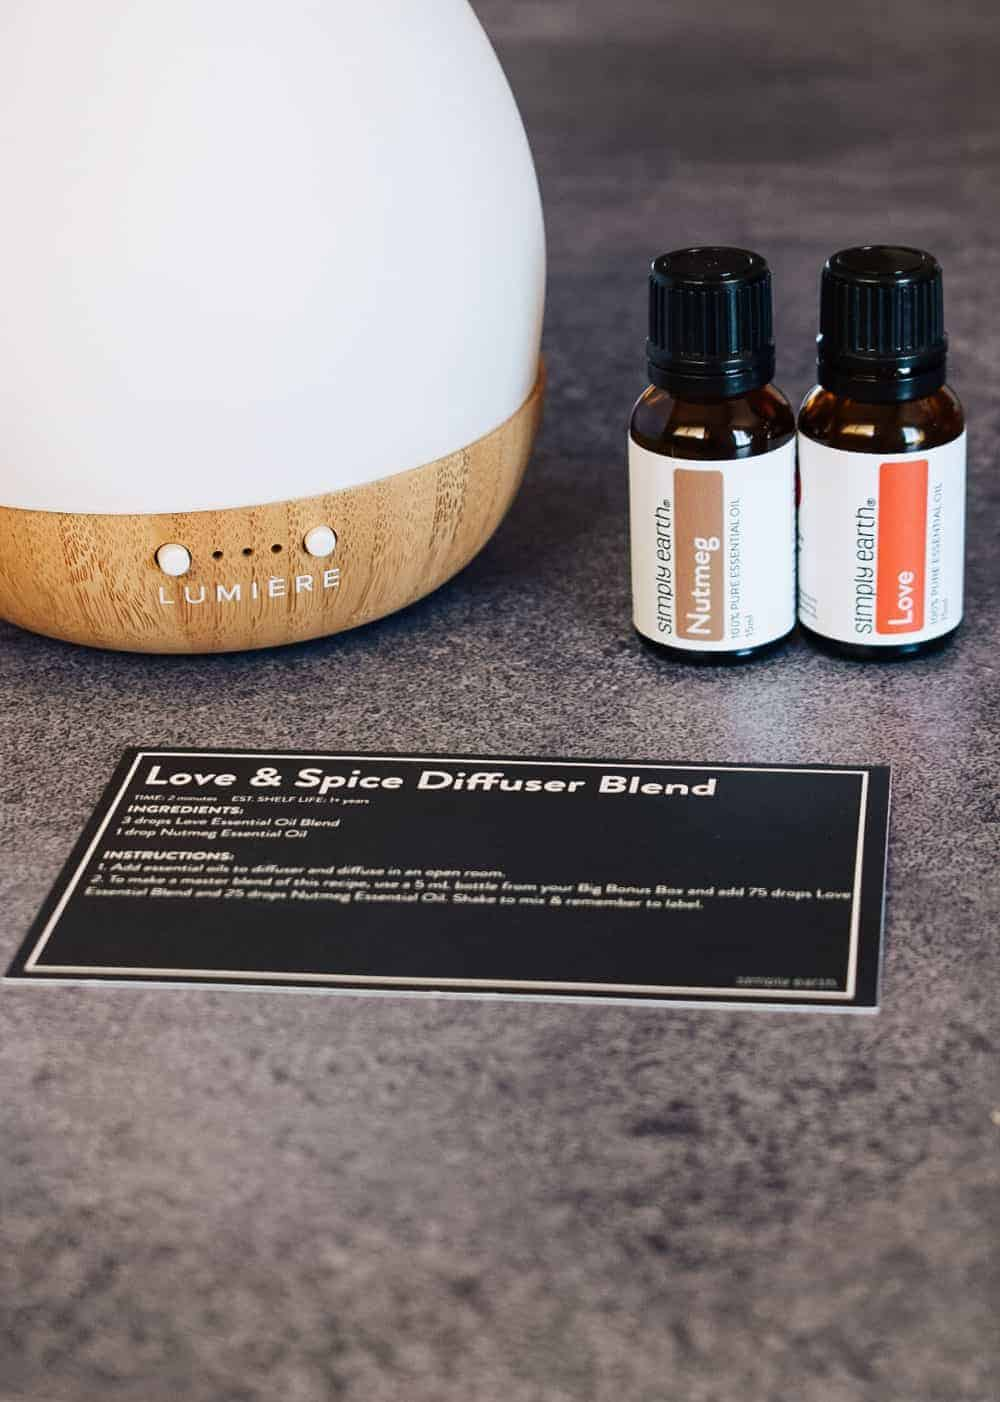 Love essential oil blend and nutmeg essential oil next to lumiere essential oil diffuser